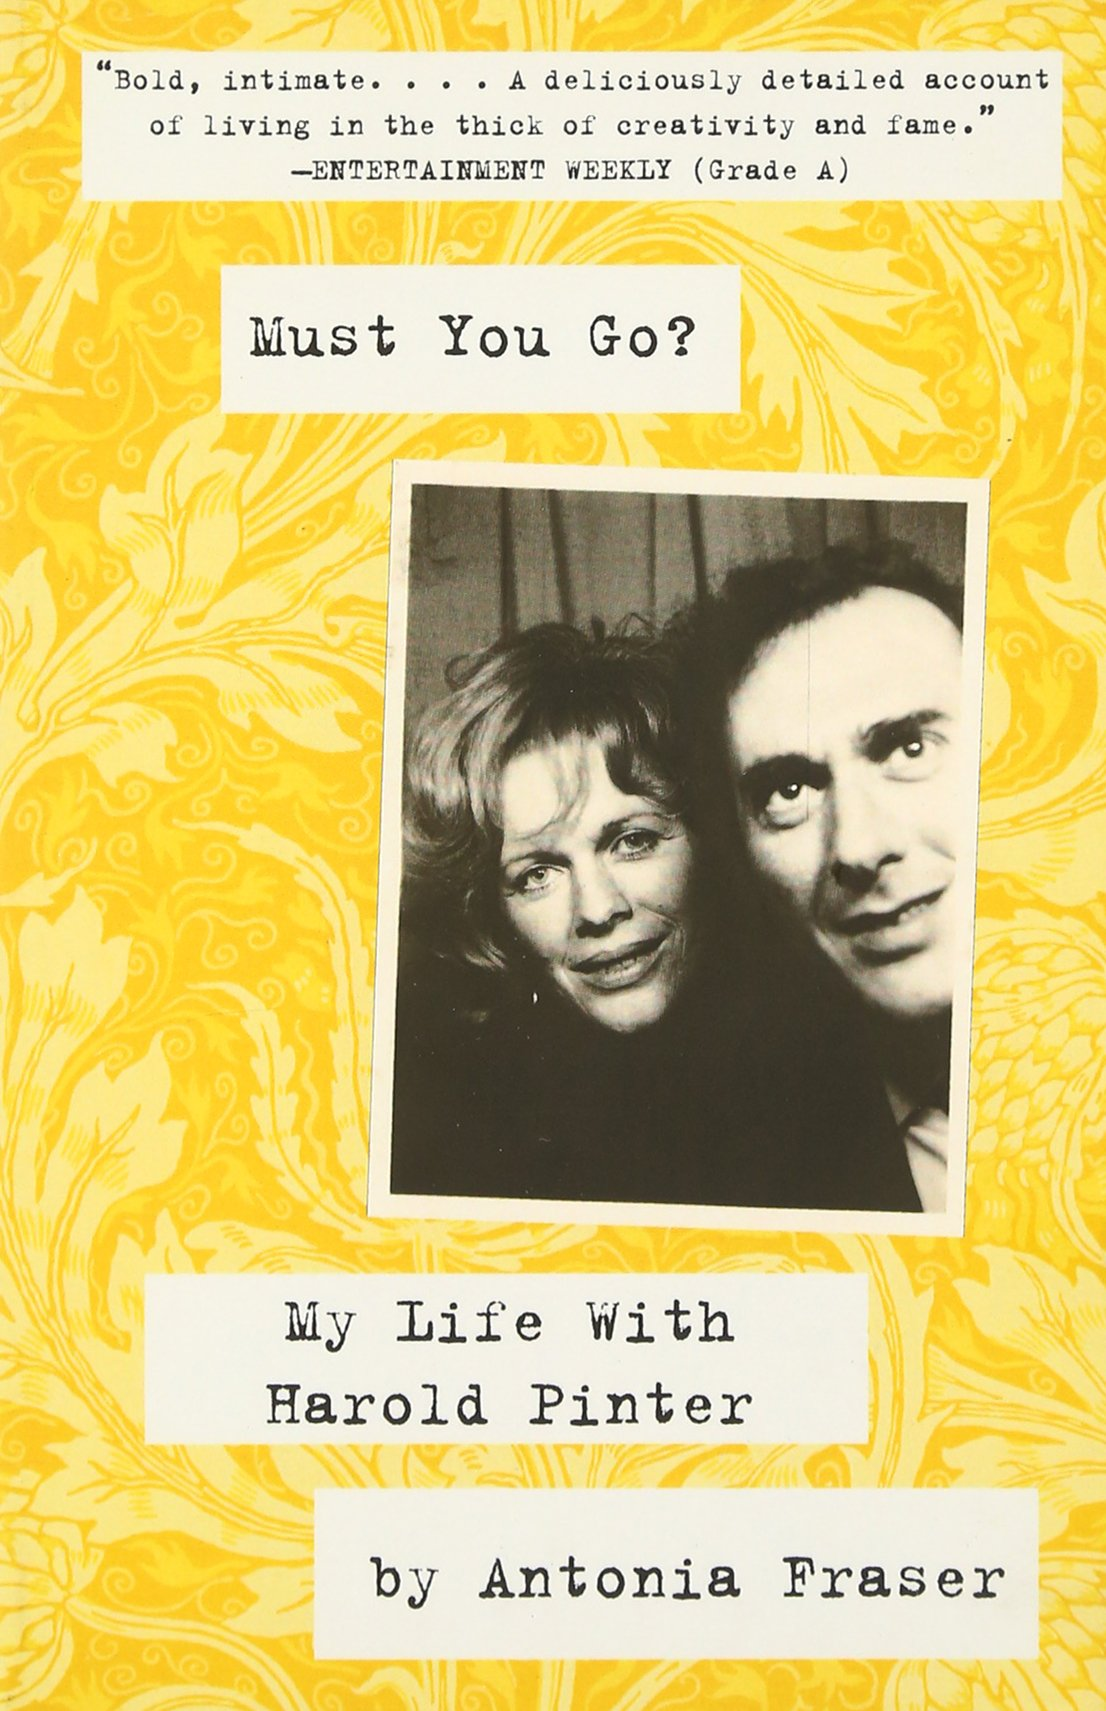 My Life With Harold Pinter: Lady Antonia Fraser: 9780307475572: Amazon:  Books